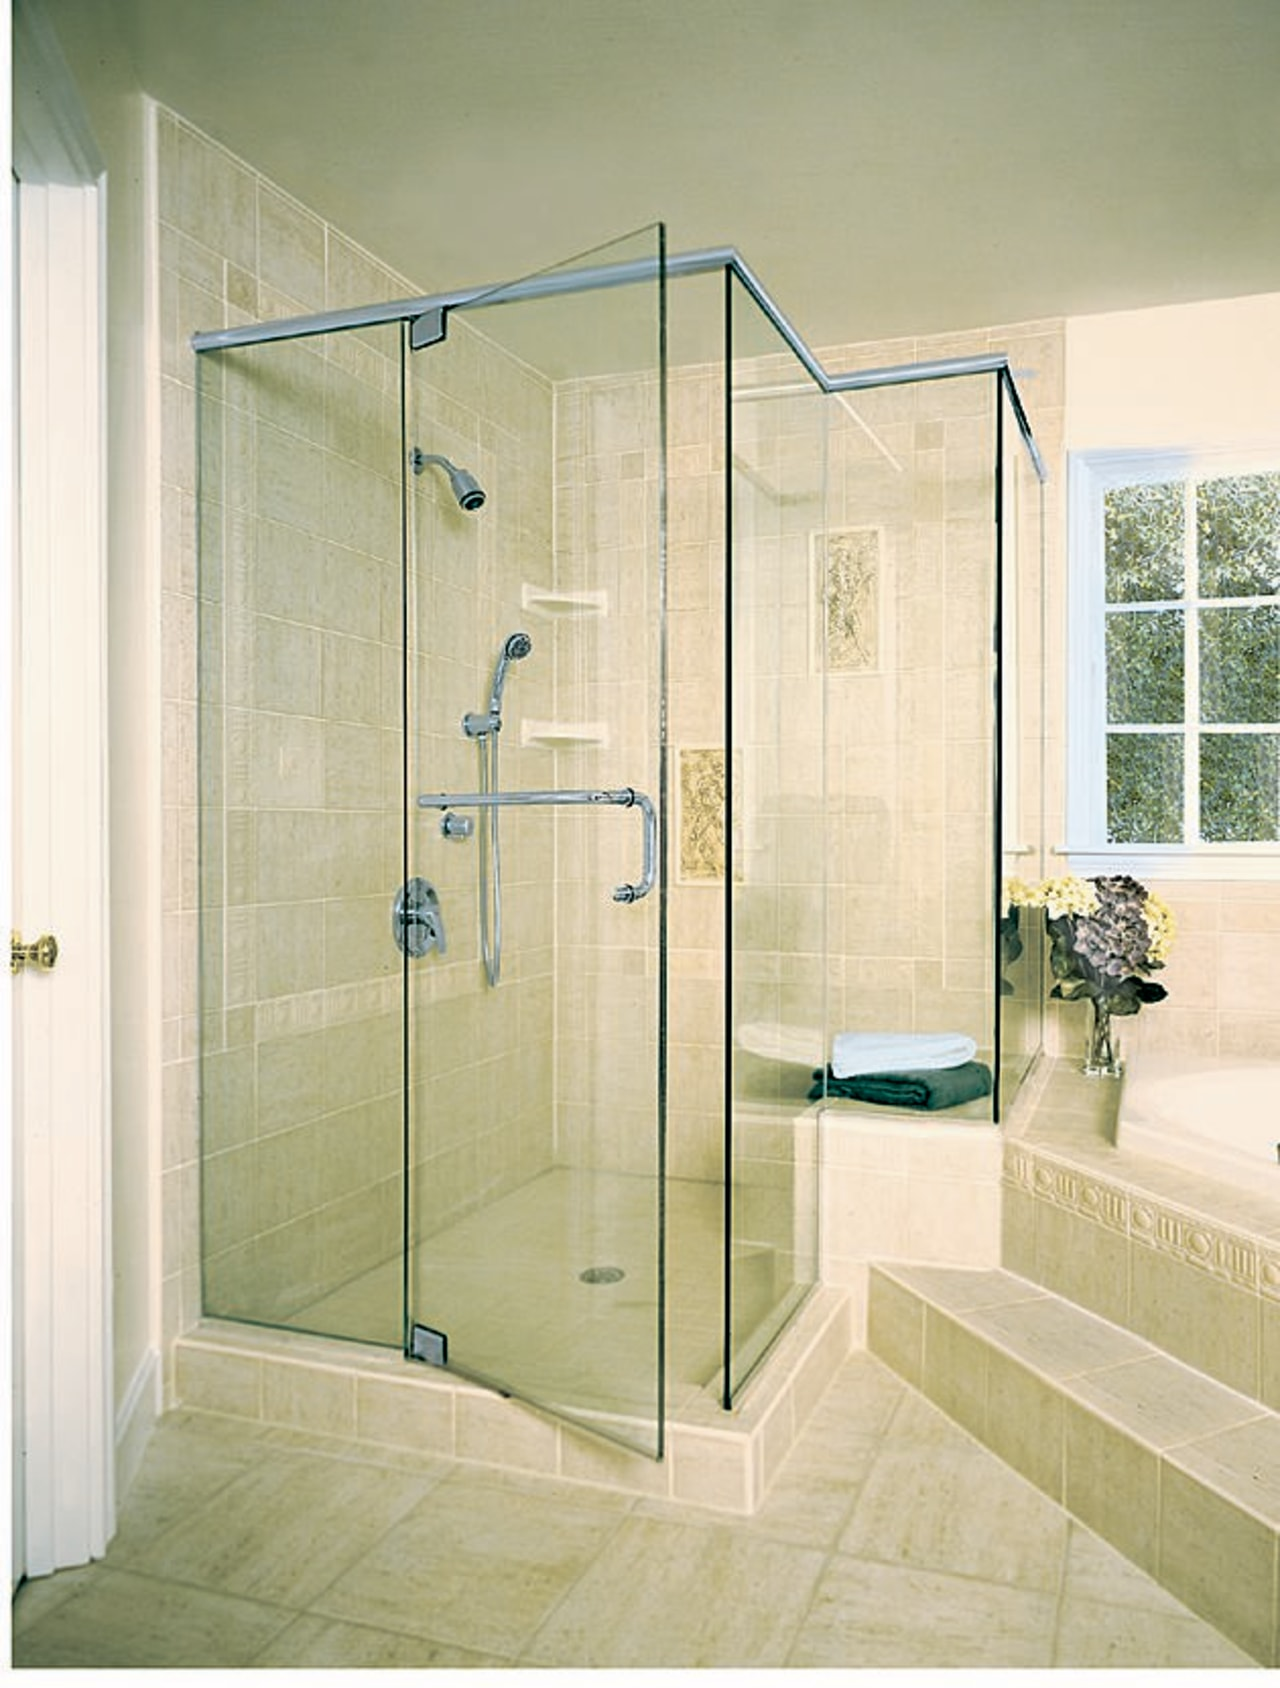 The bathroom shower angle, bathroom, door, glass, plumbing fixture, shower, shower door, yellow, green